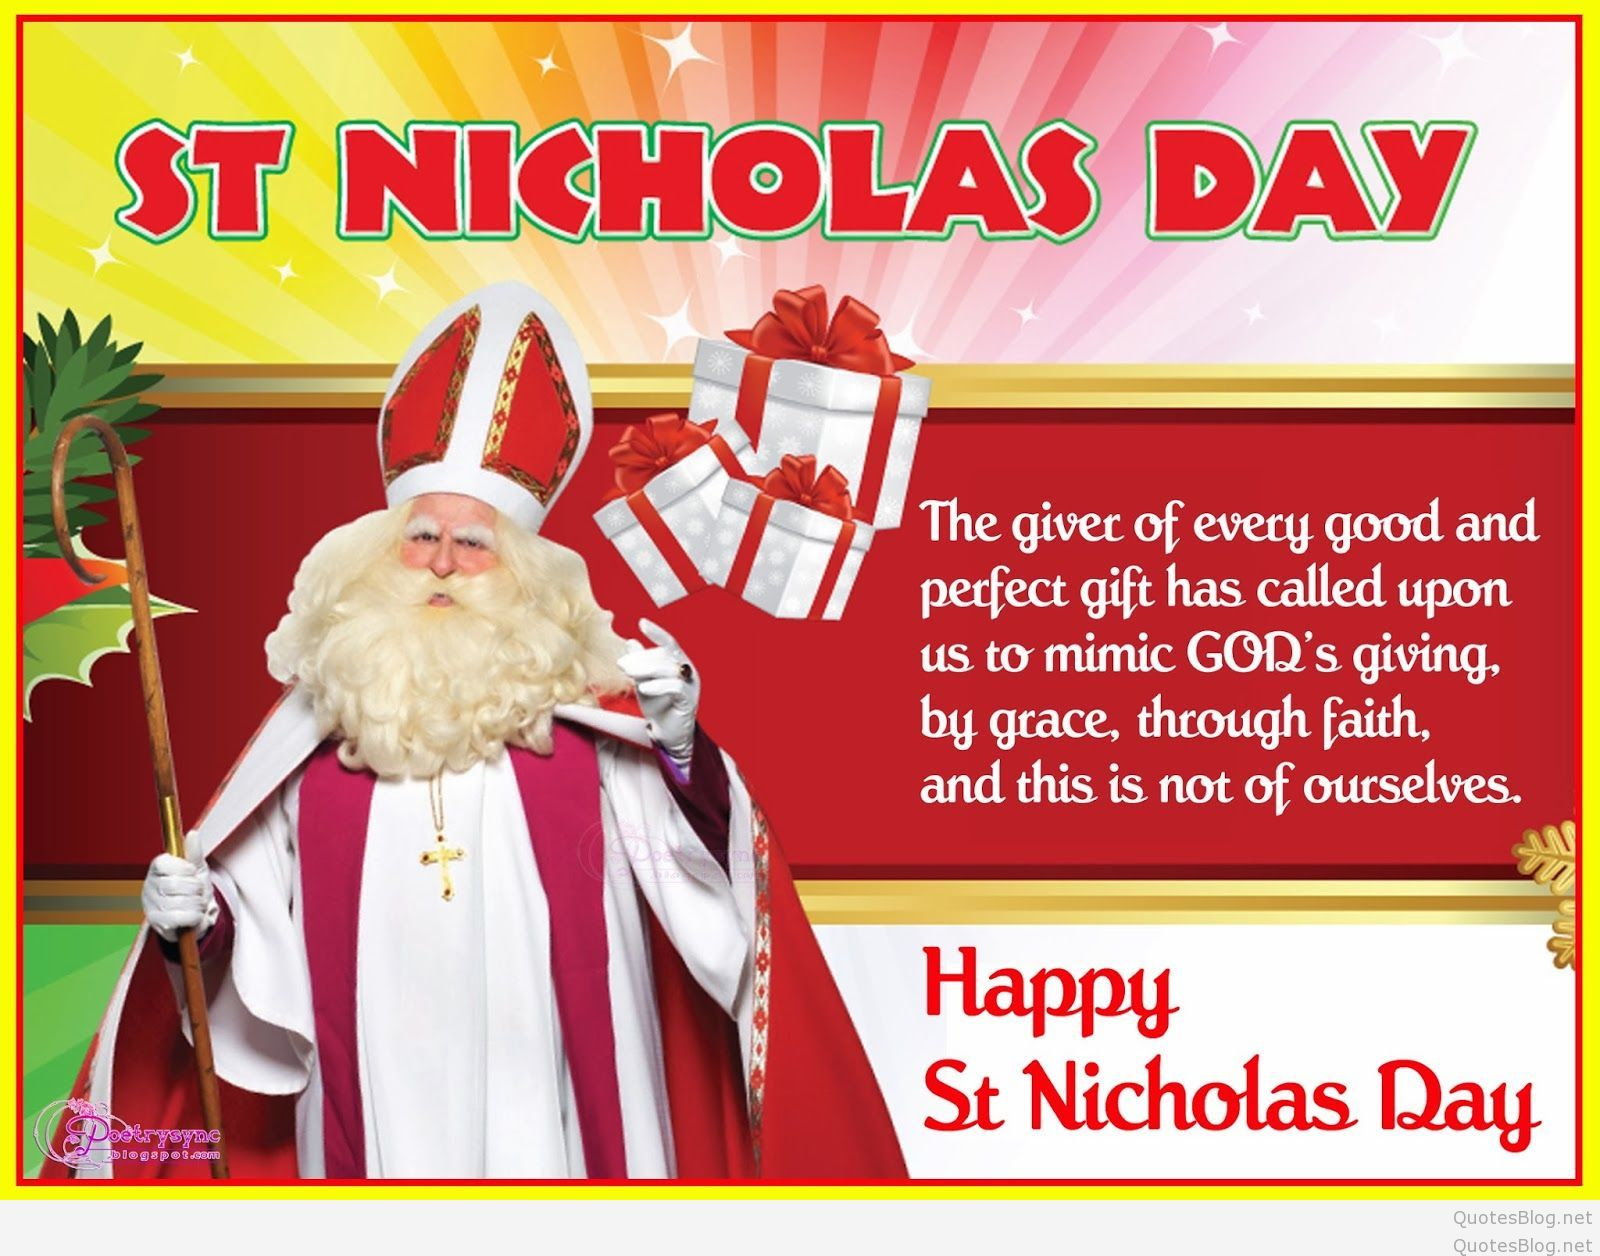 Happy St Nicholas Day 2018 Quotes Sayings Status